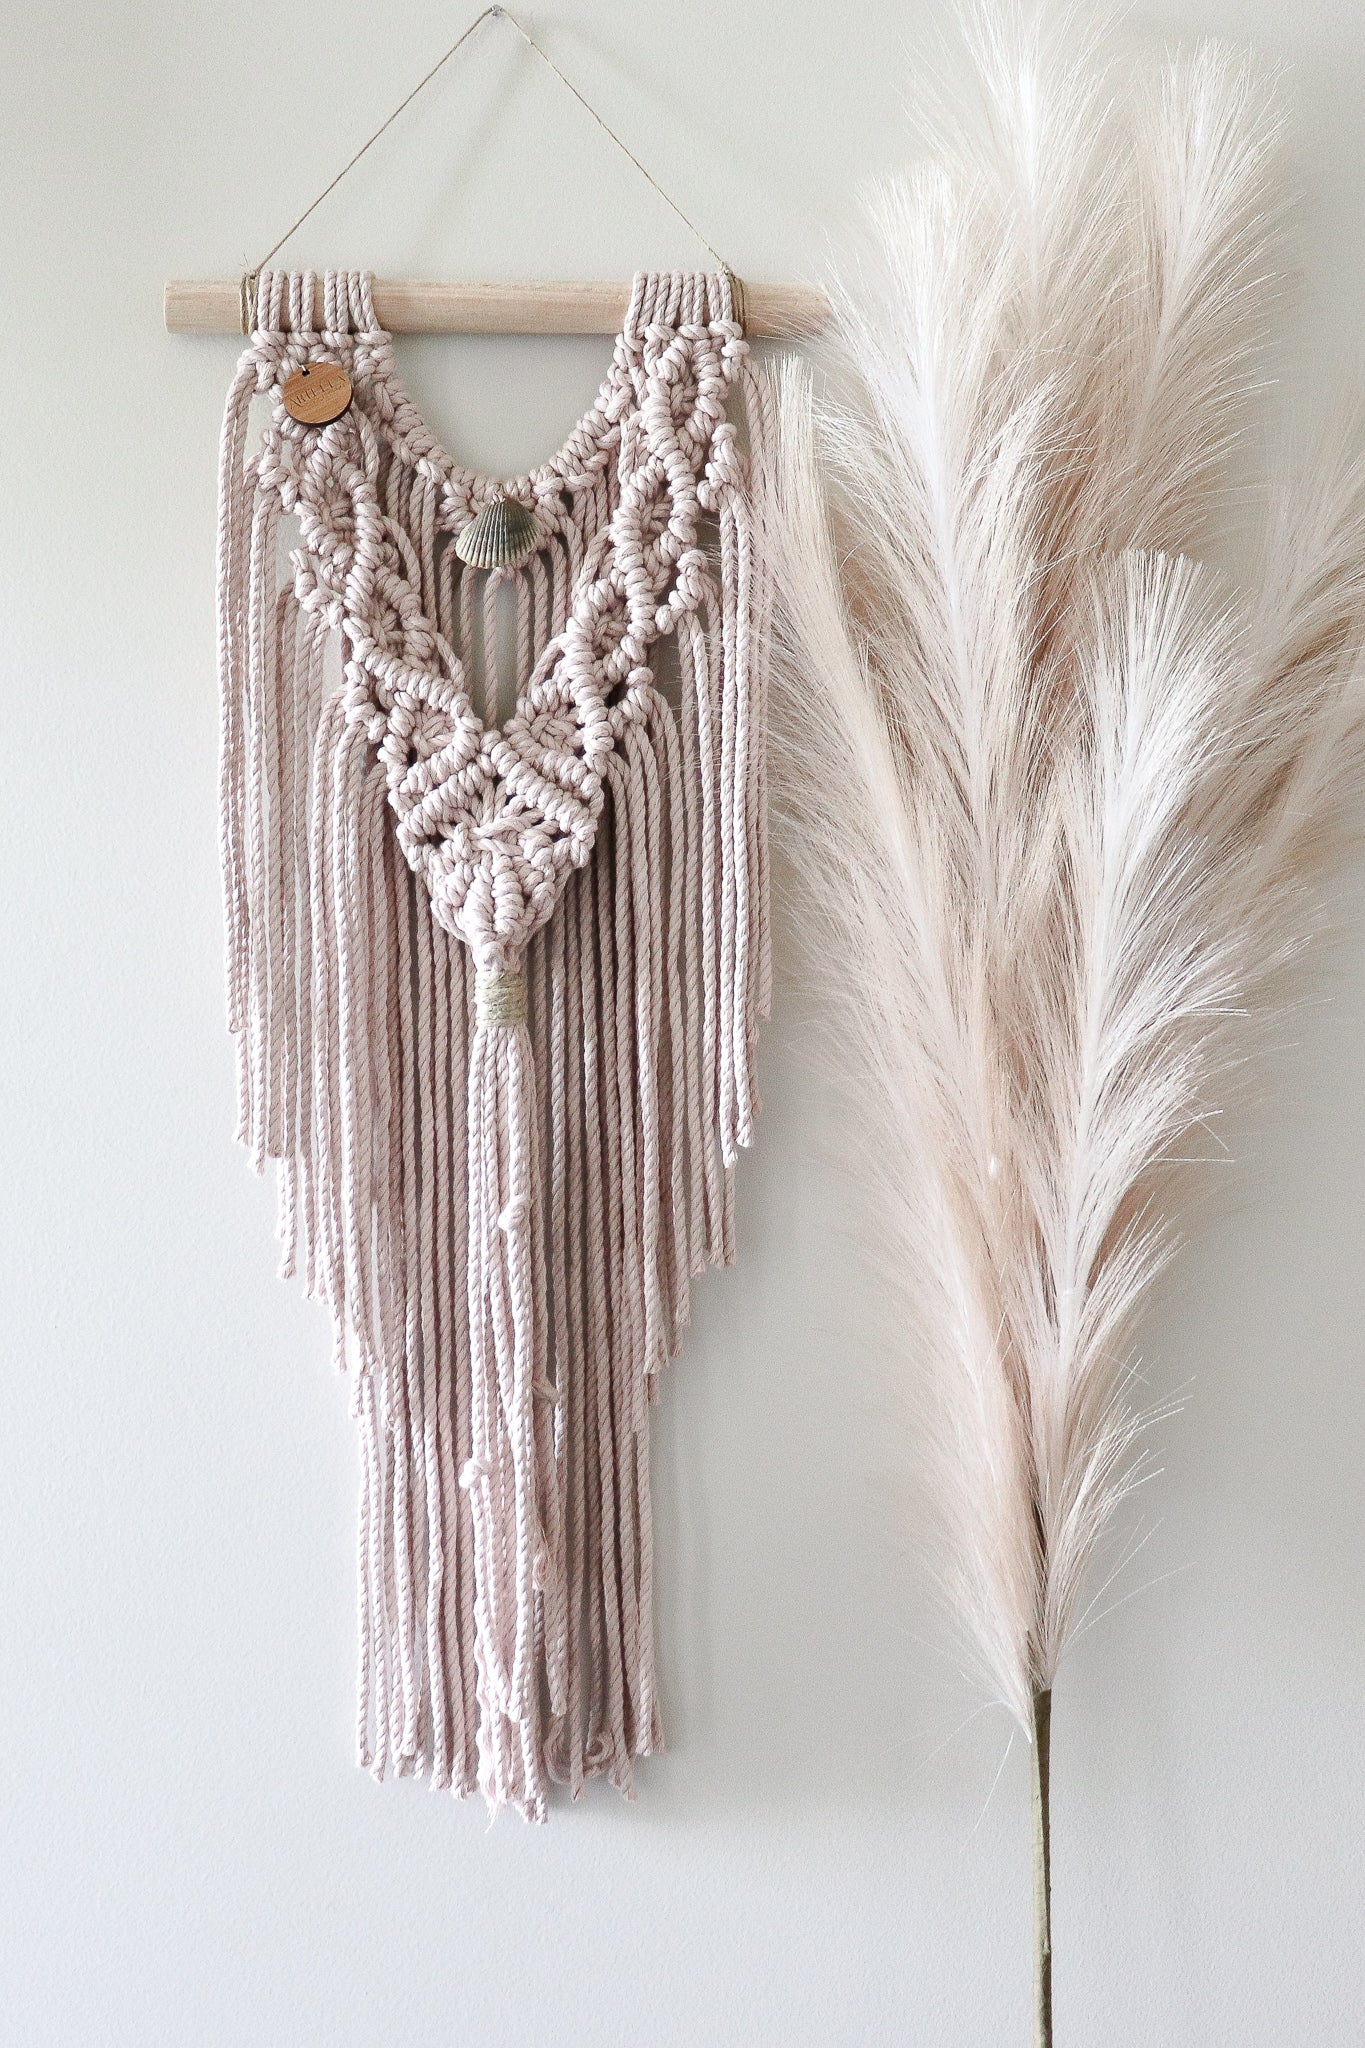 Bisque | Small Macramè wall hanging